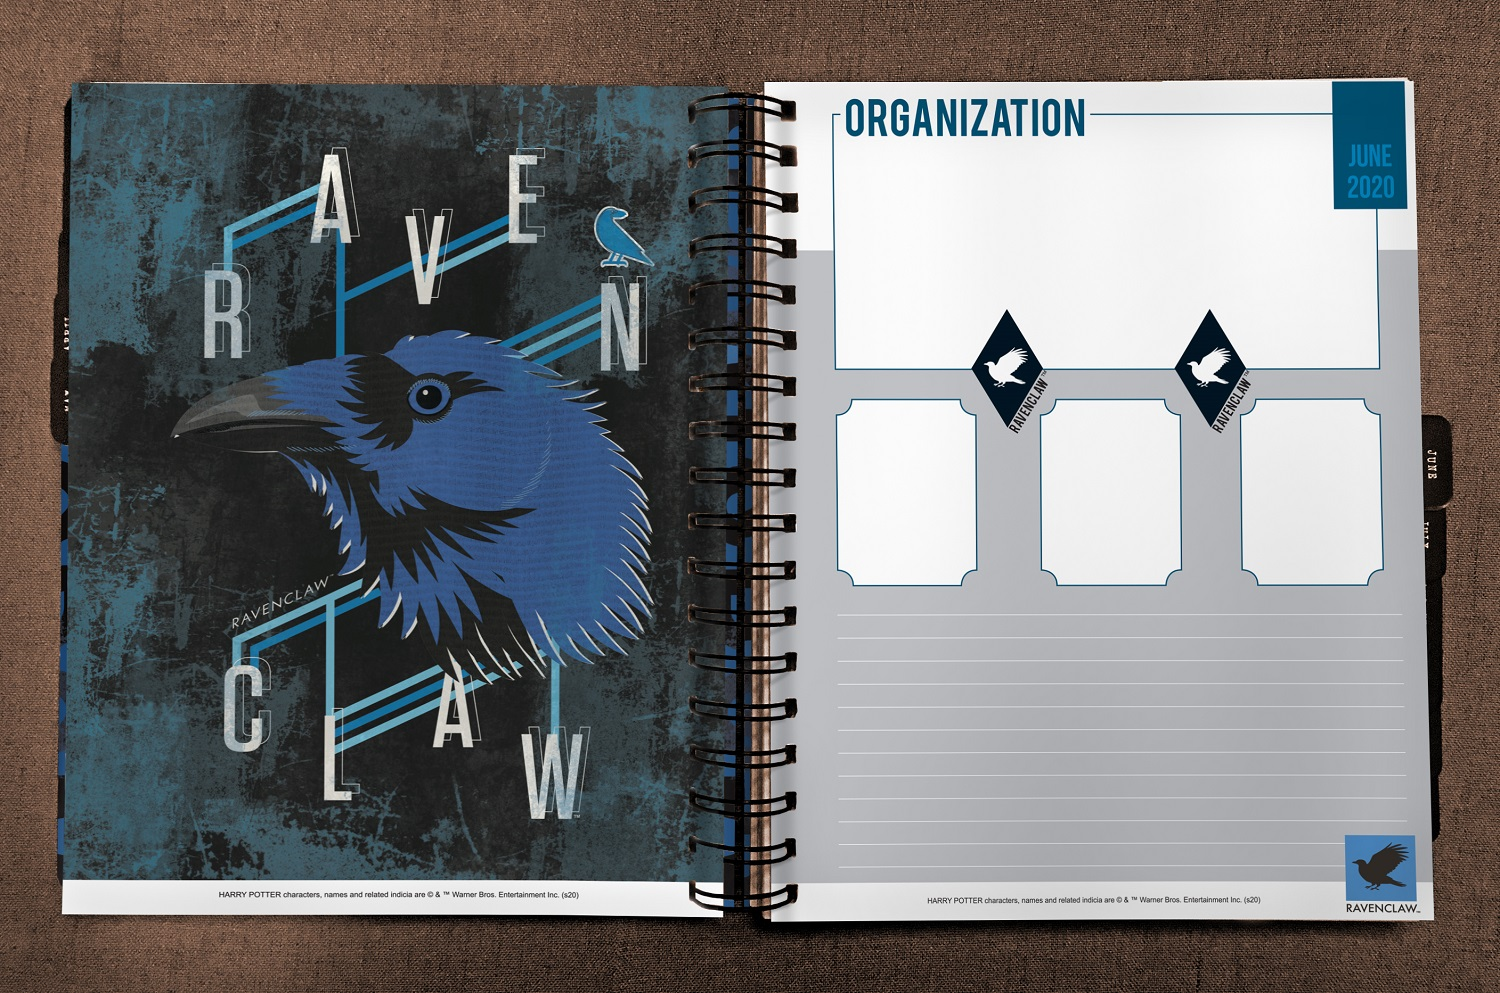 ConQuest Harry Potter Ravenclaw 2020 inside spread